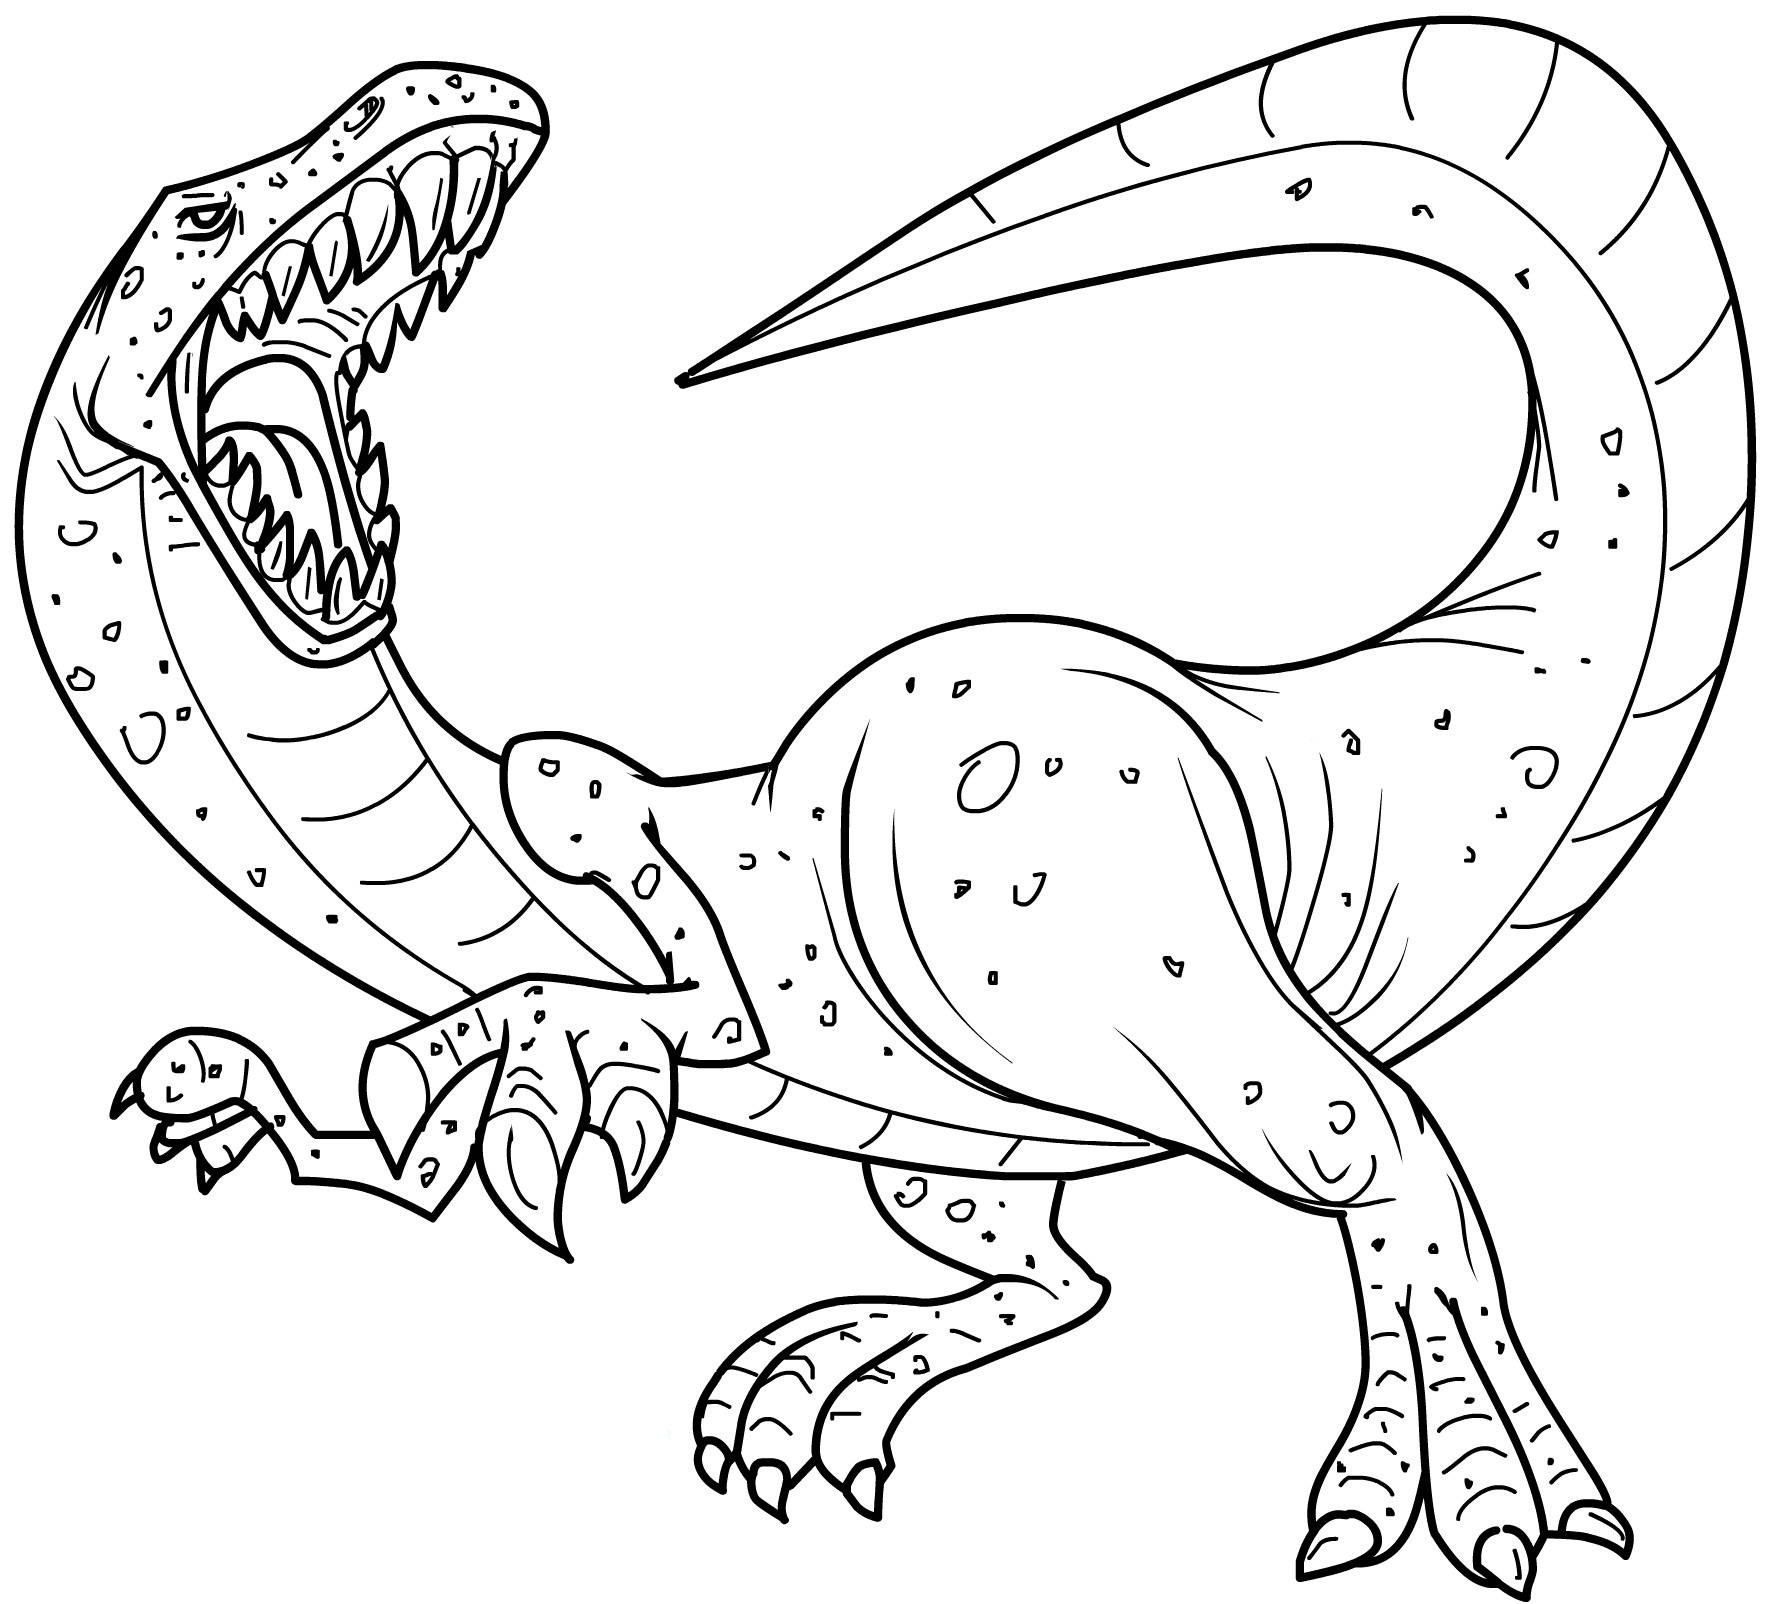 free printable dinosaur coloring pages dinosaurs coloring pages collection free coloring sheets dinosaur free pages coloring printable